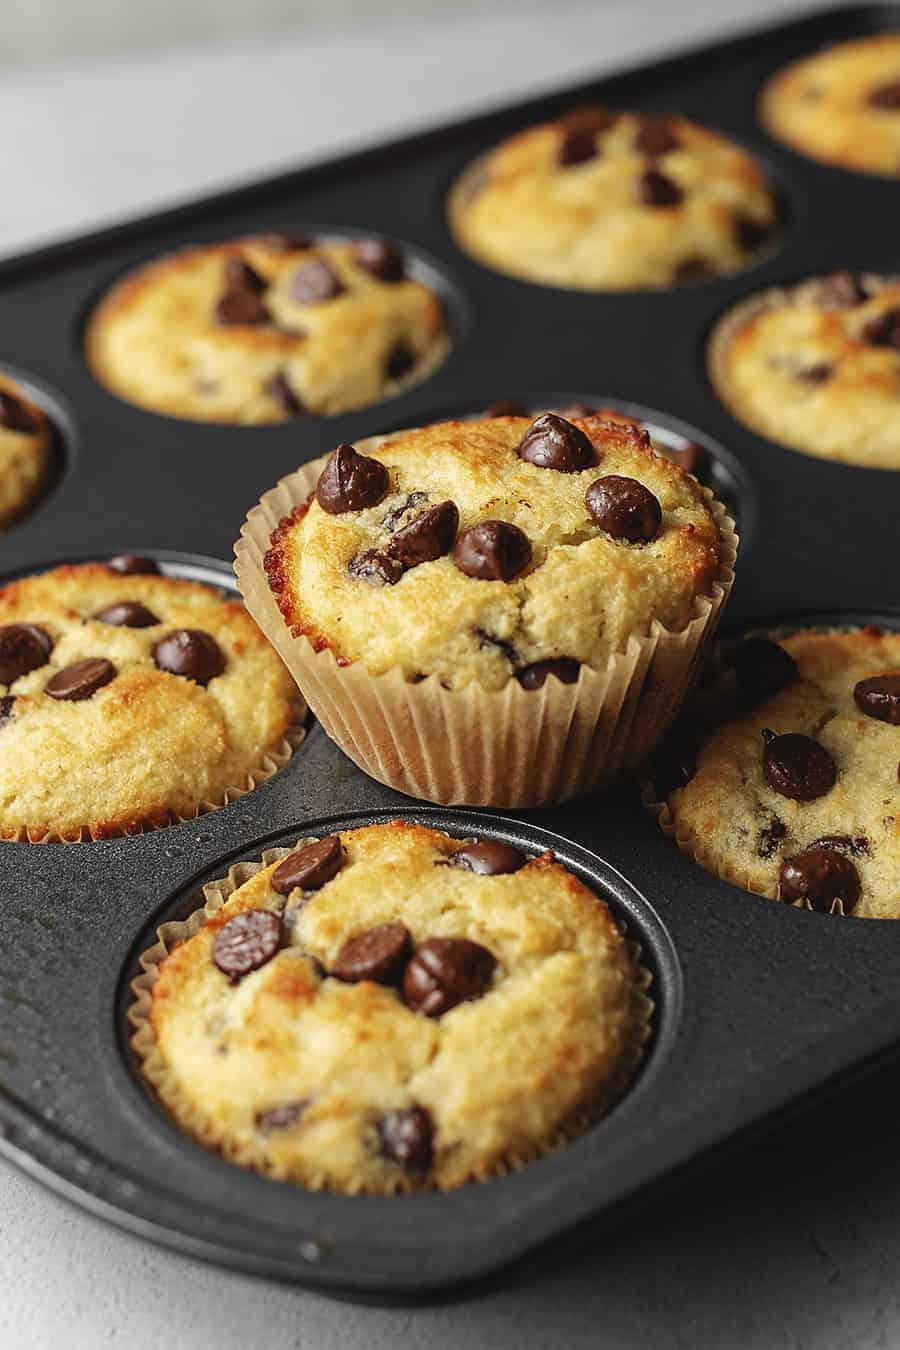 keto chocolate chip muffins in a muffin tin